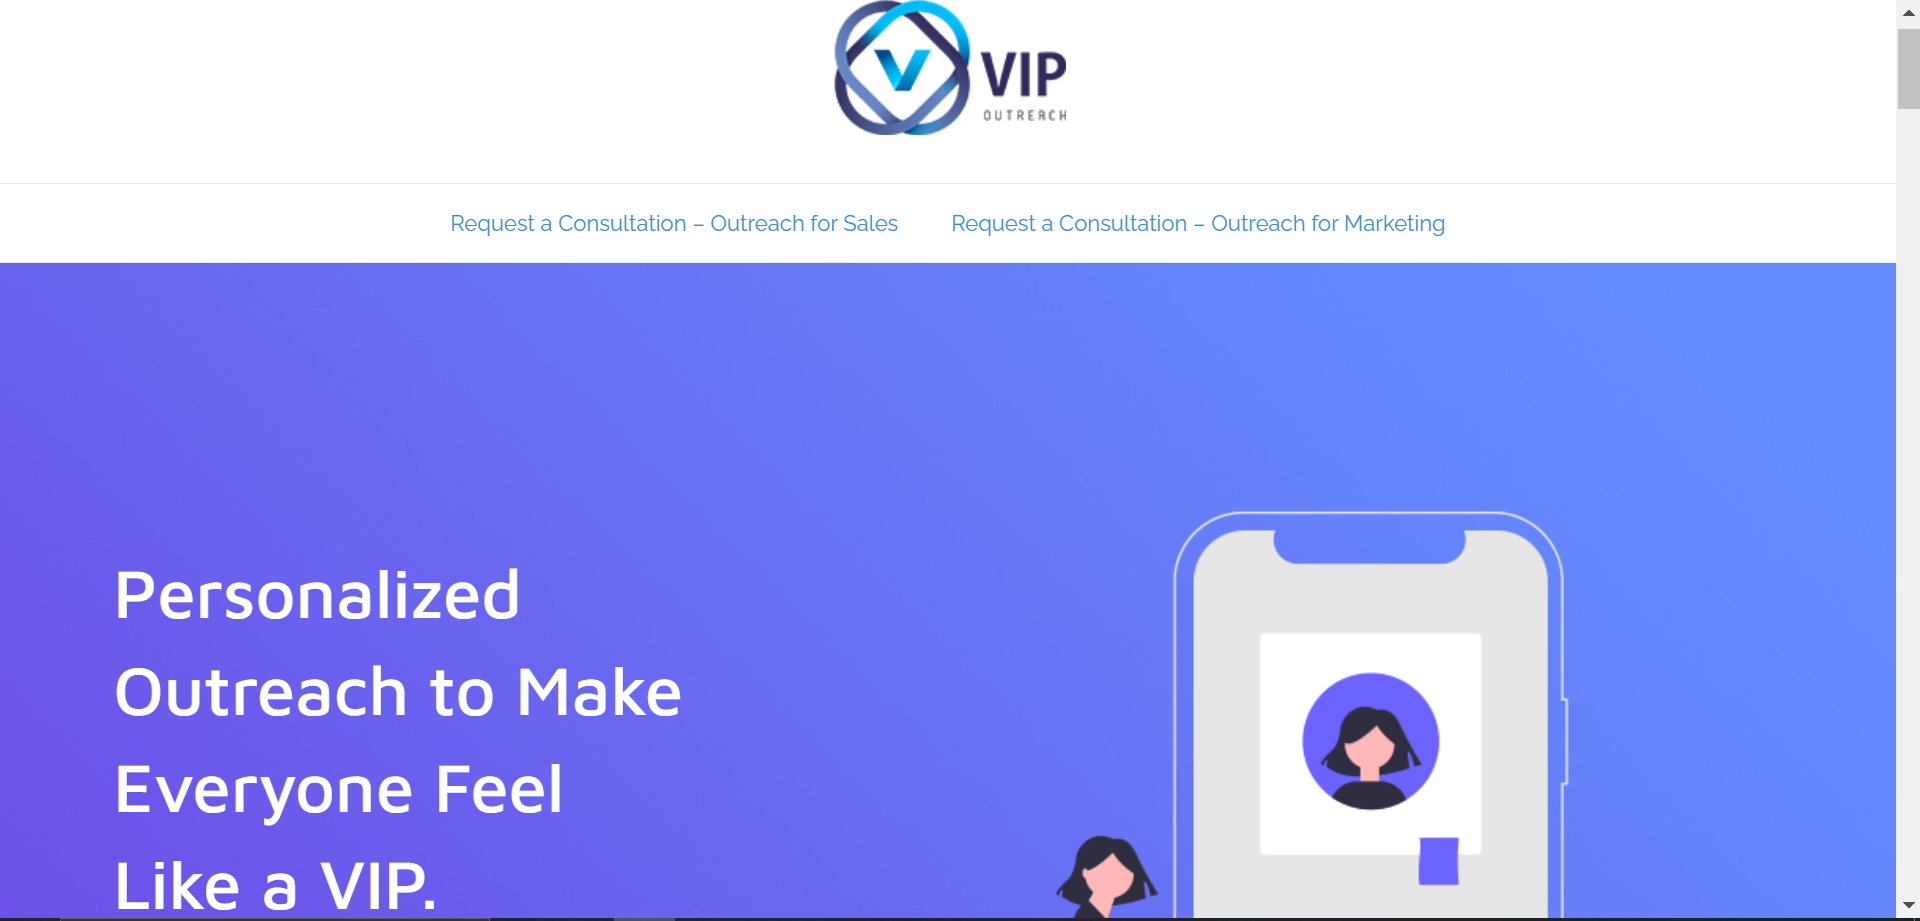 image of website VIP OUTREACH